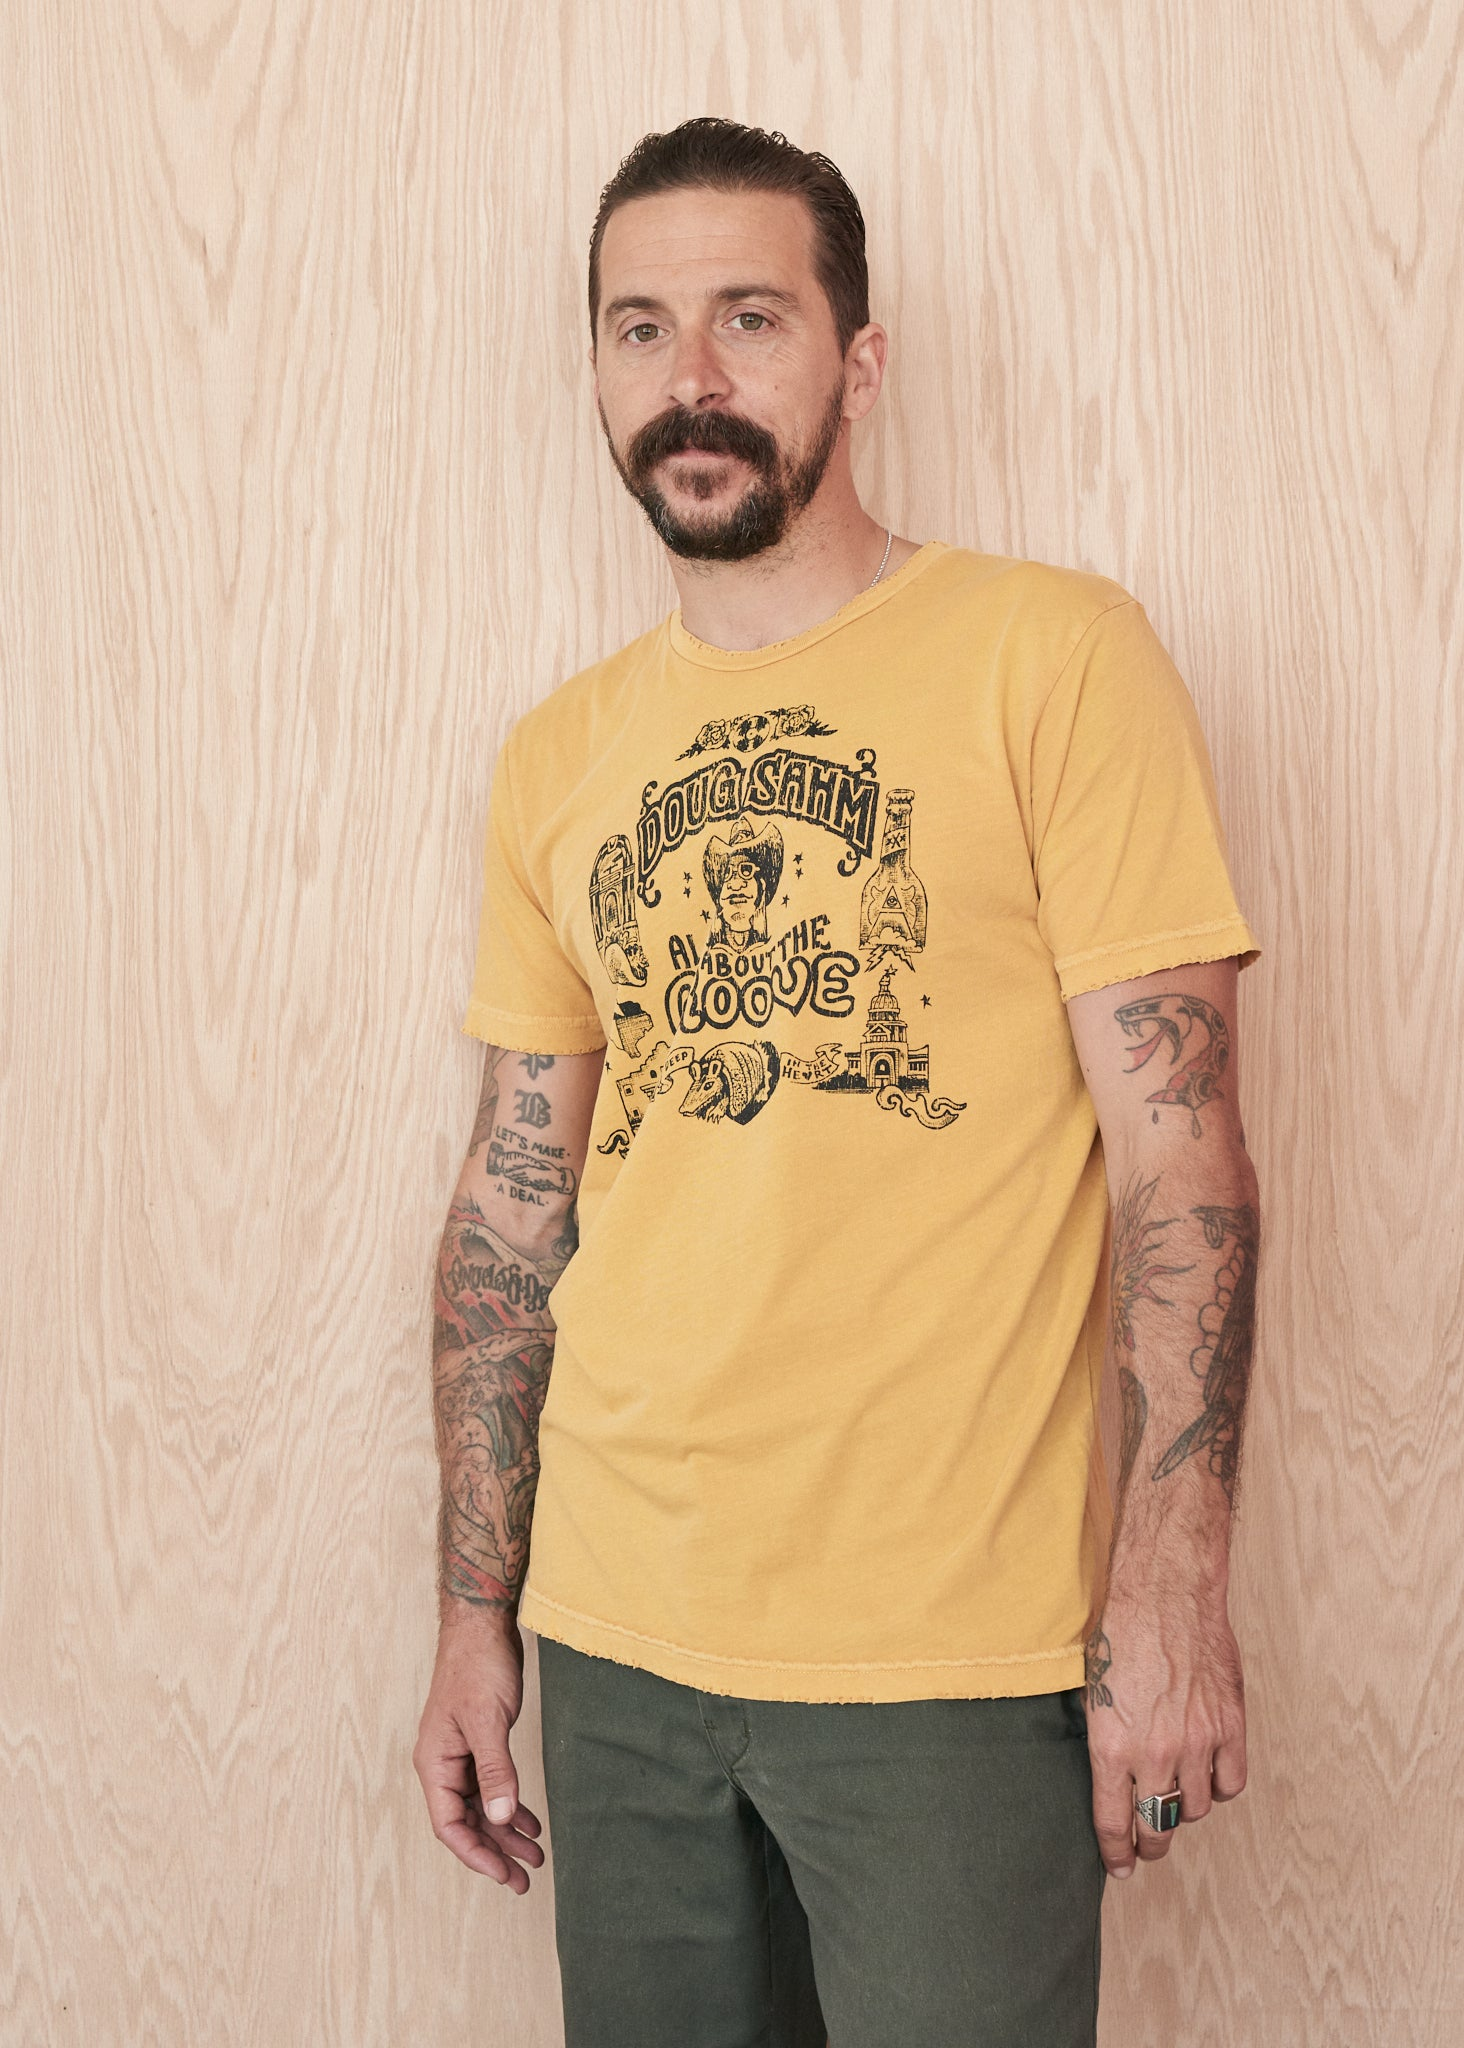 All About the Groove Doug Sahm Men's Crew Tee Shirt - Mustard - Men's Tee Shirt - Midnight Rider